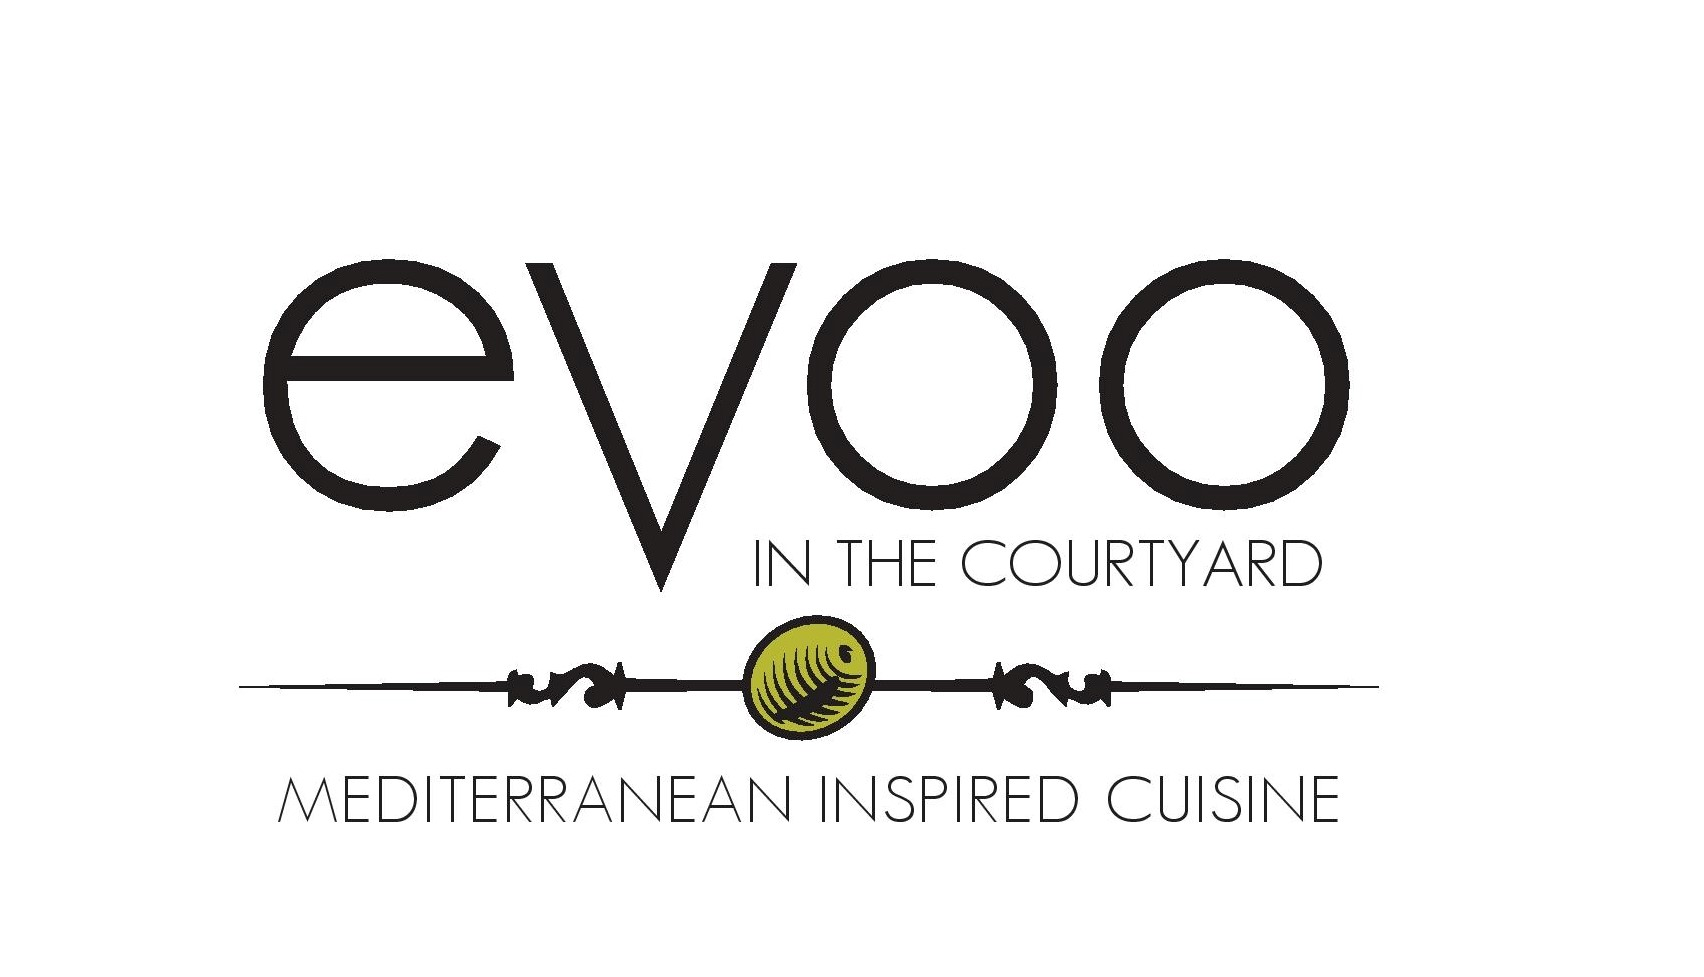 Evoo in the Courtyard